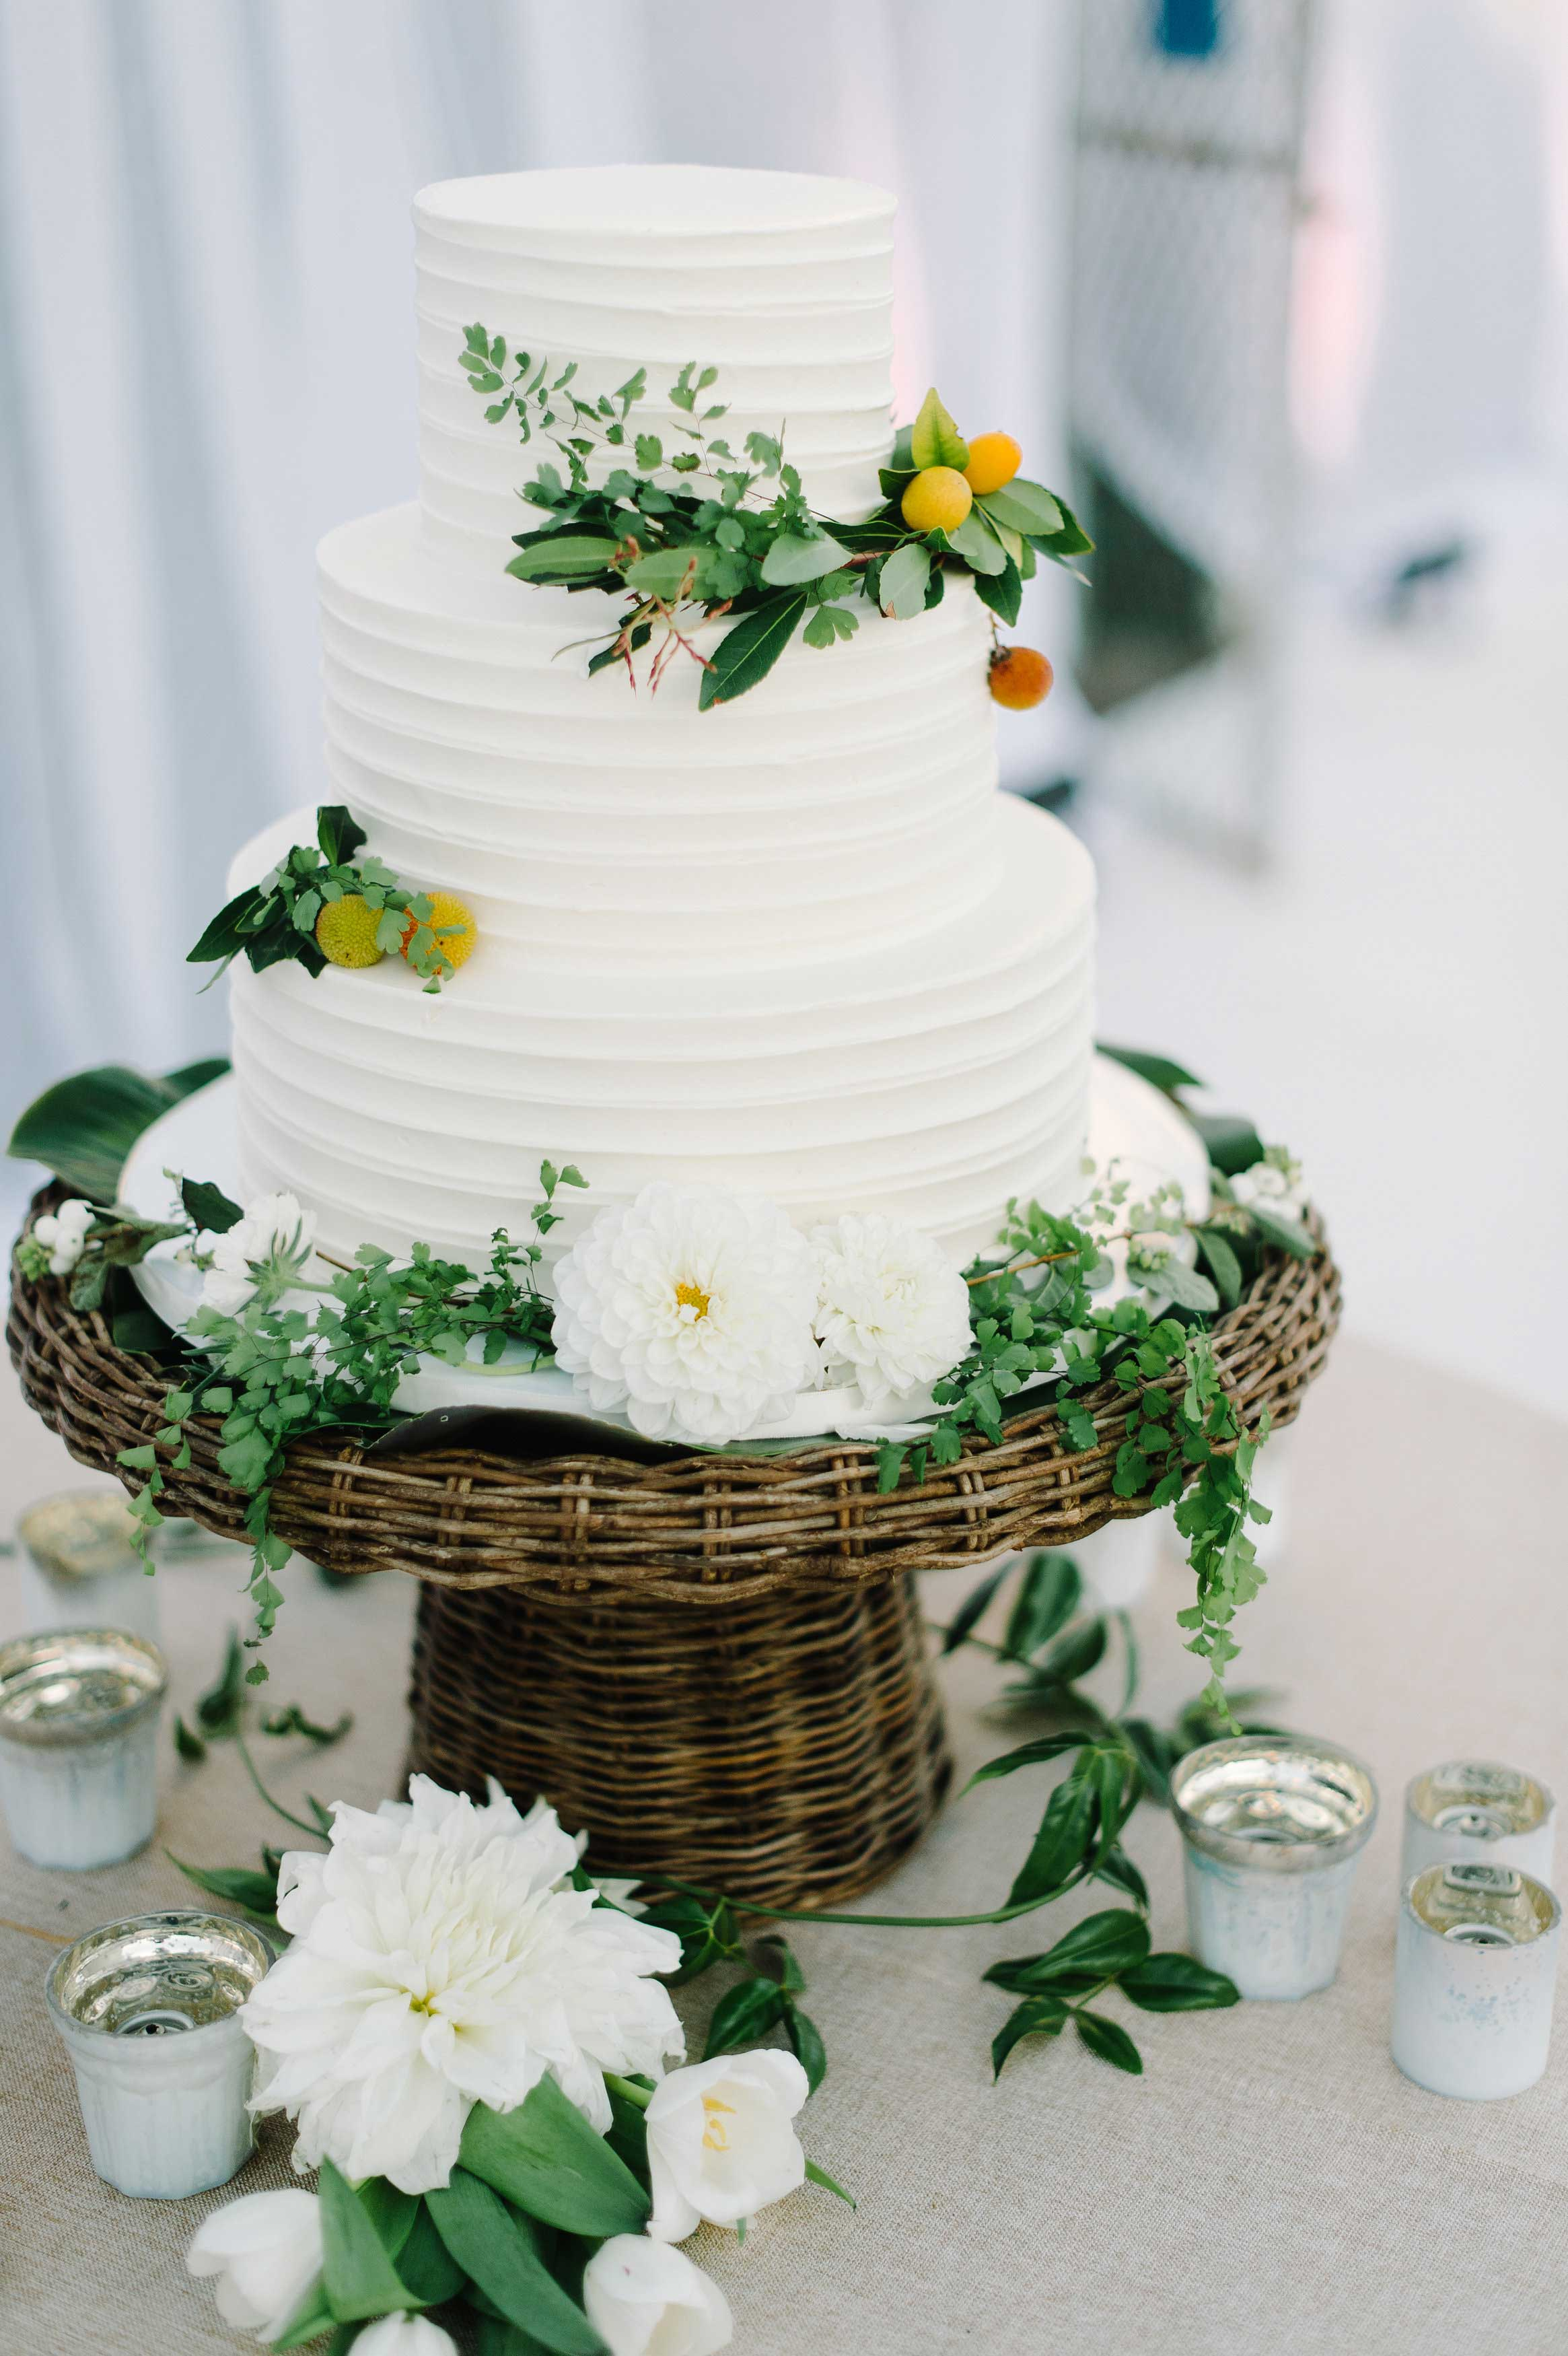 Wedding Cakes  Pros and Cons of Buttercream vs  Fondant   Inside     Buttercream Wedding Cakes